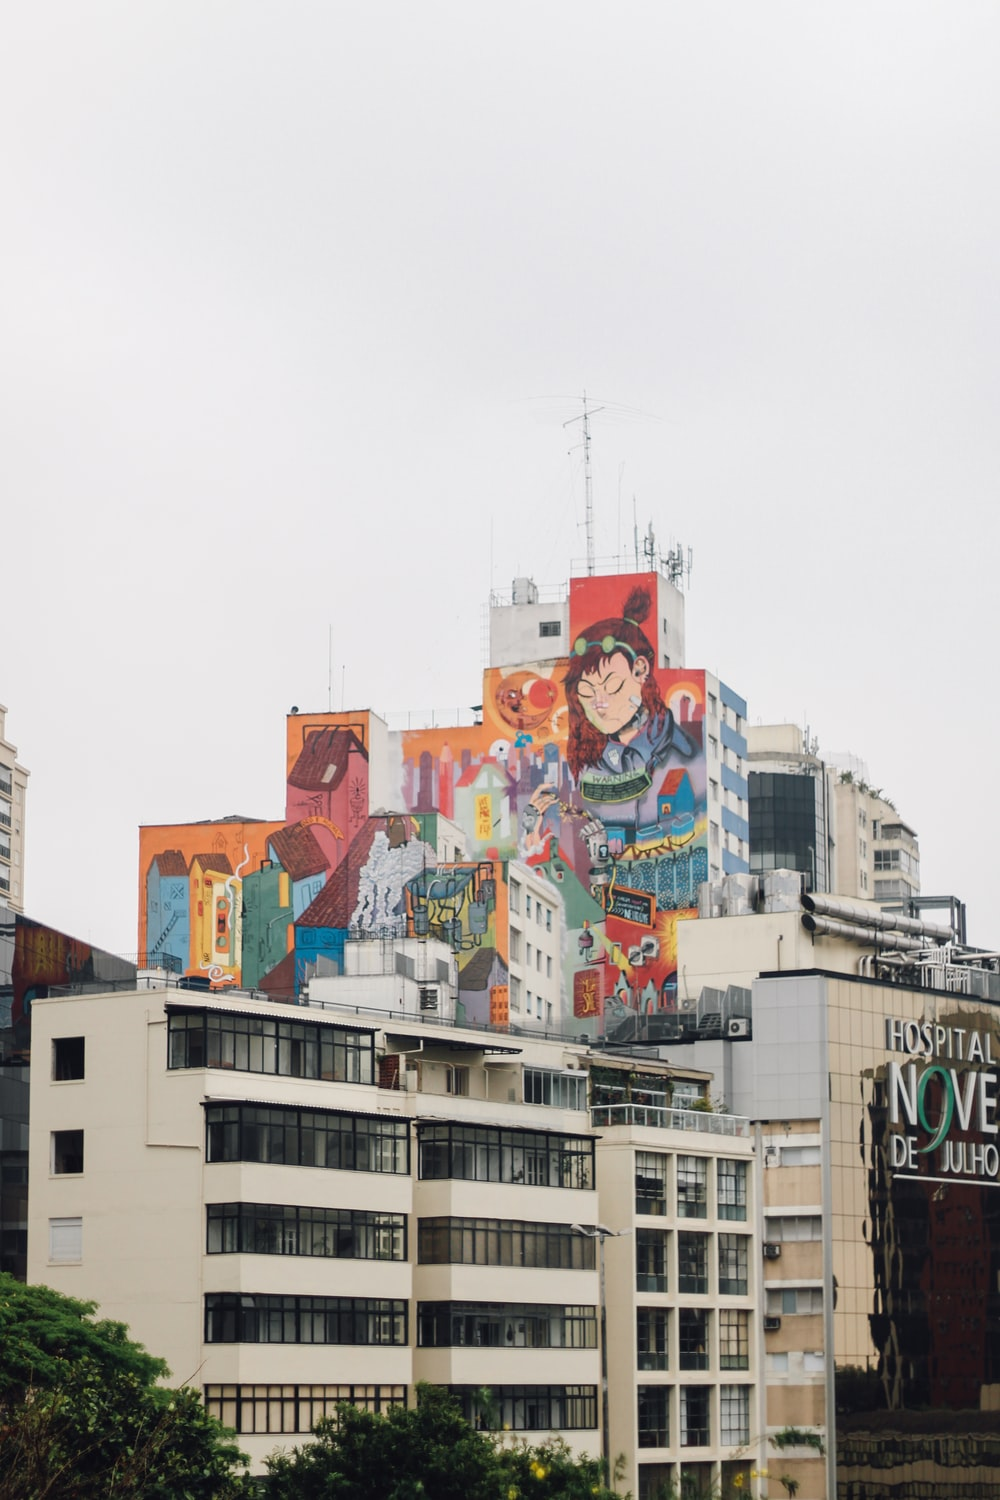 toile mural painting on concrete high-rise buildings